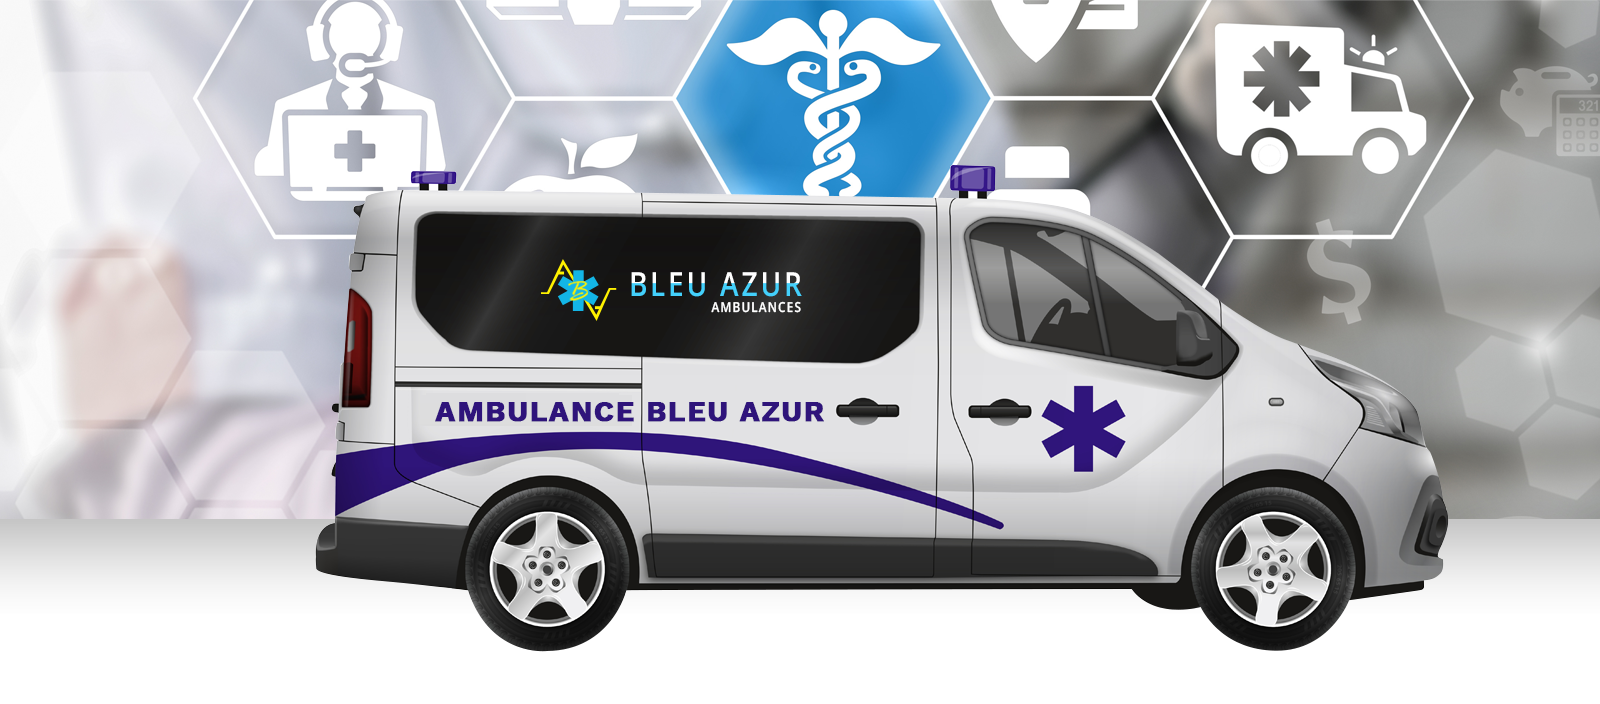 Ambulances Bleu Azur